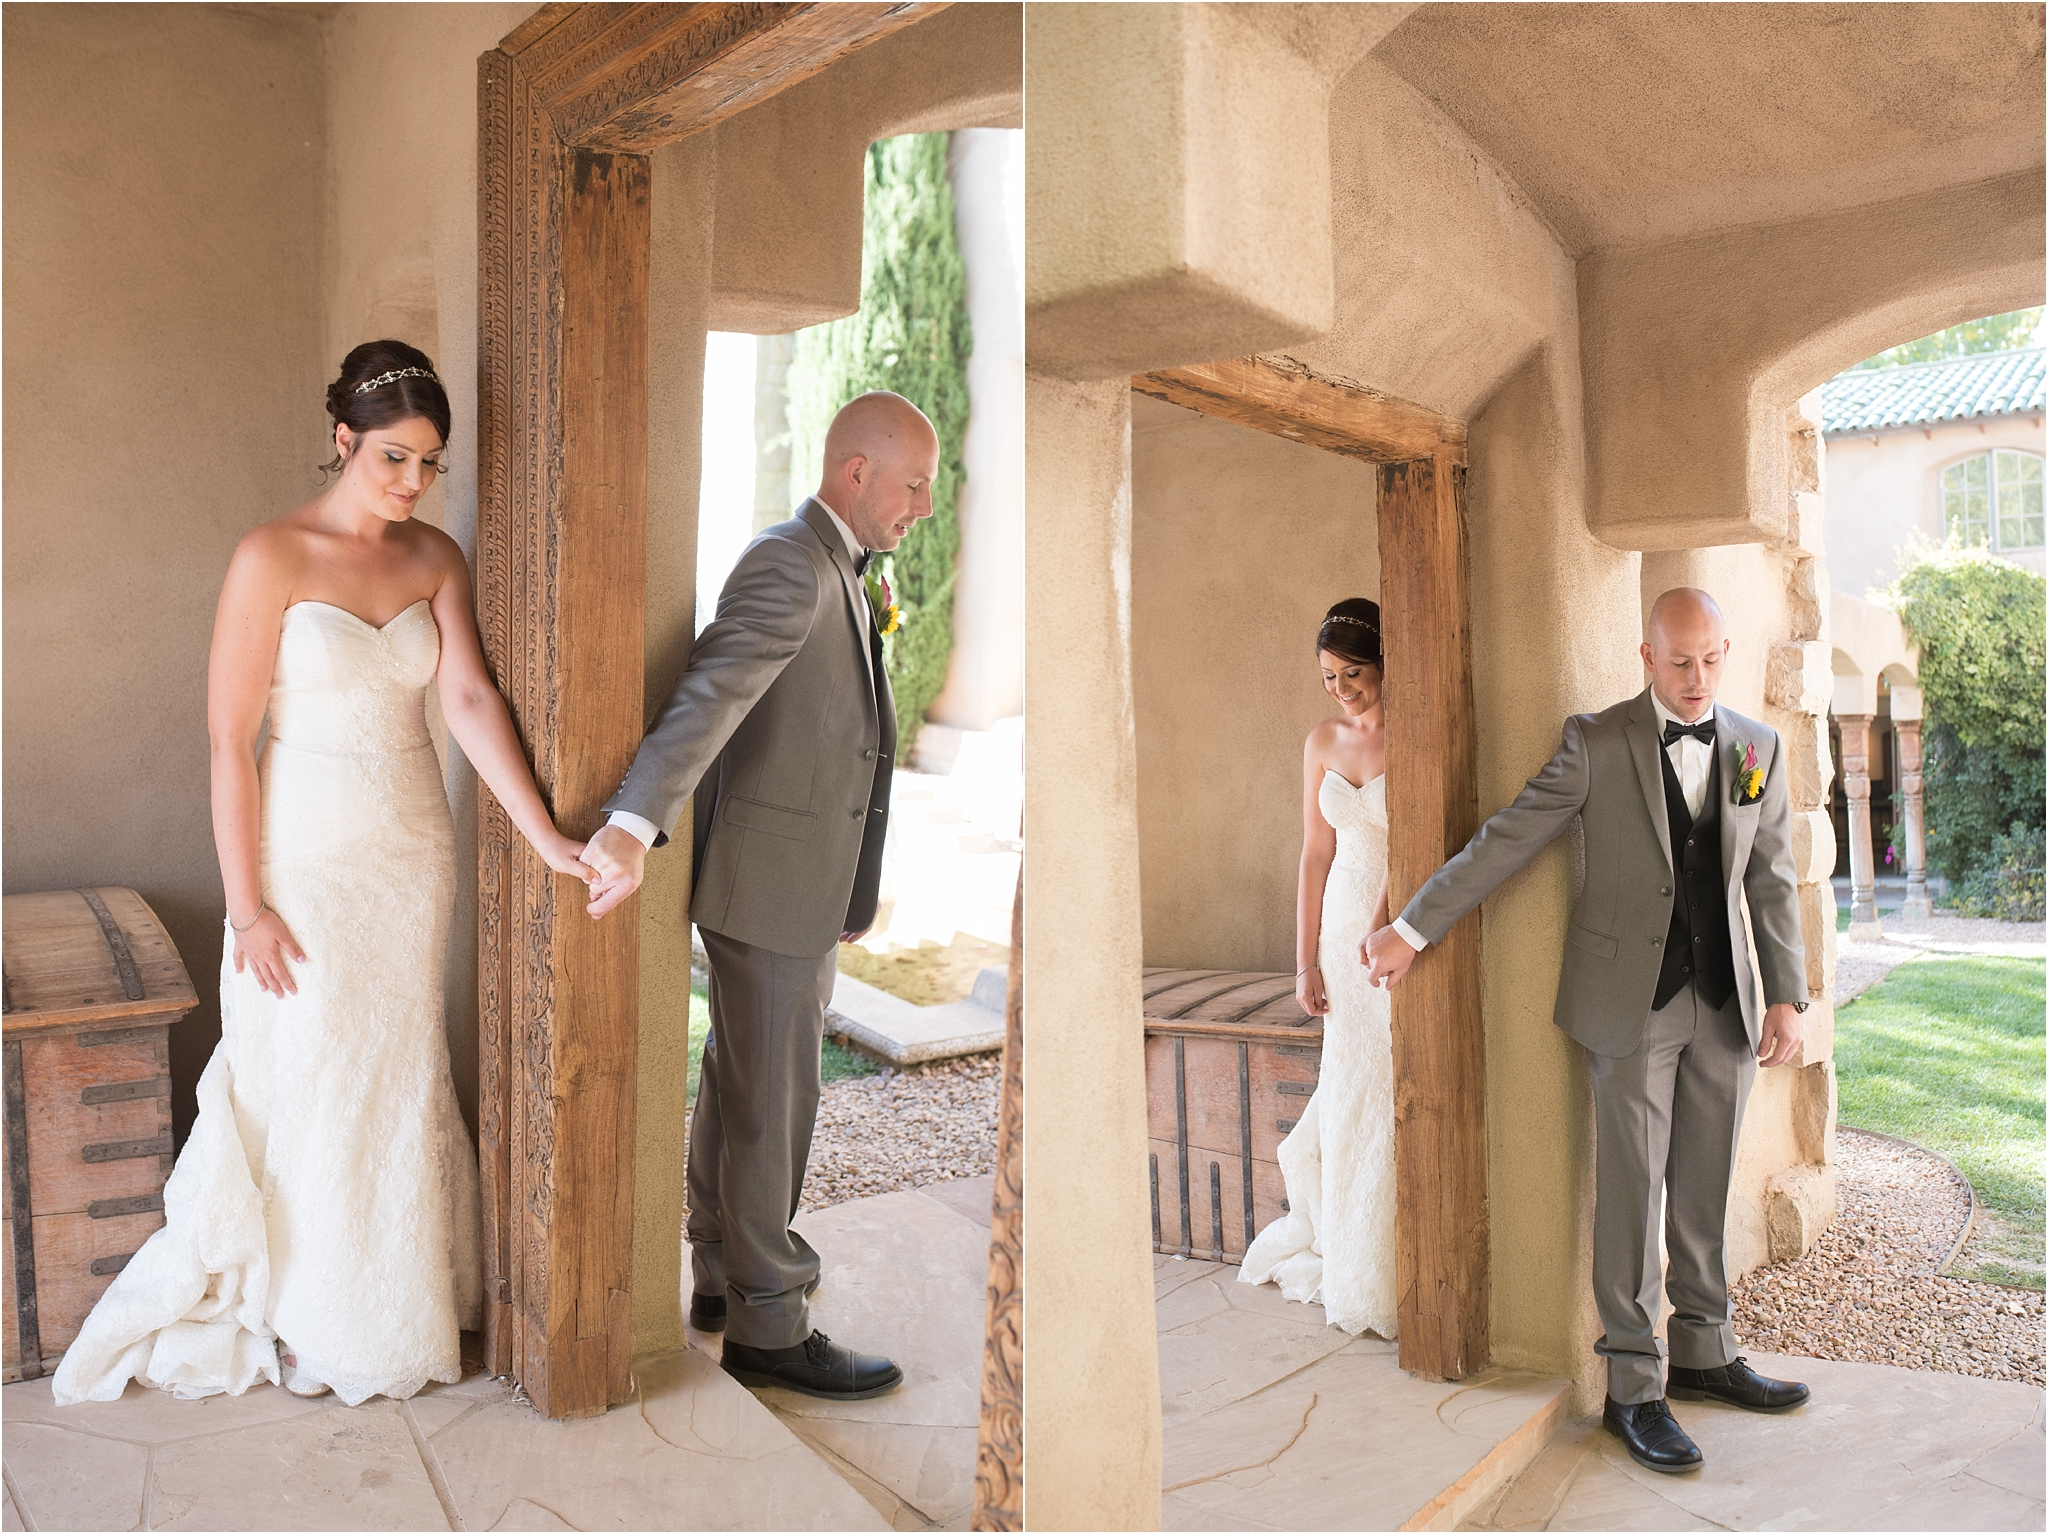 kayla kitts photography - albuquerque wedding photographer - orange september - cjohnson makeup_0017.jpg